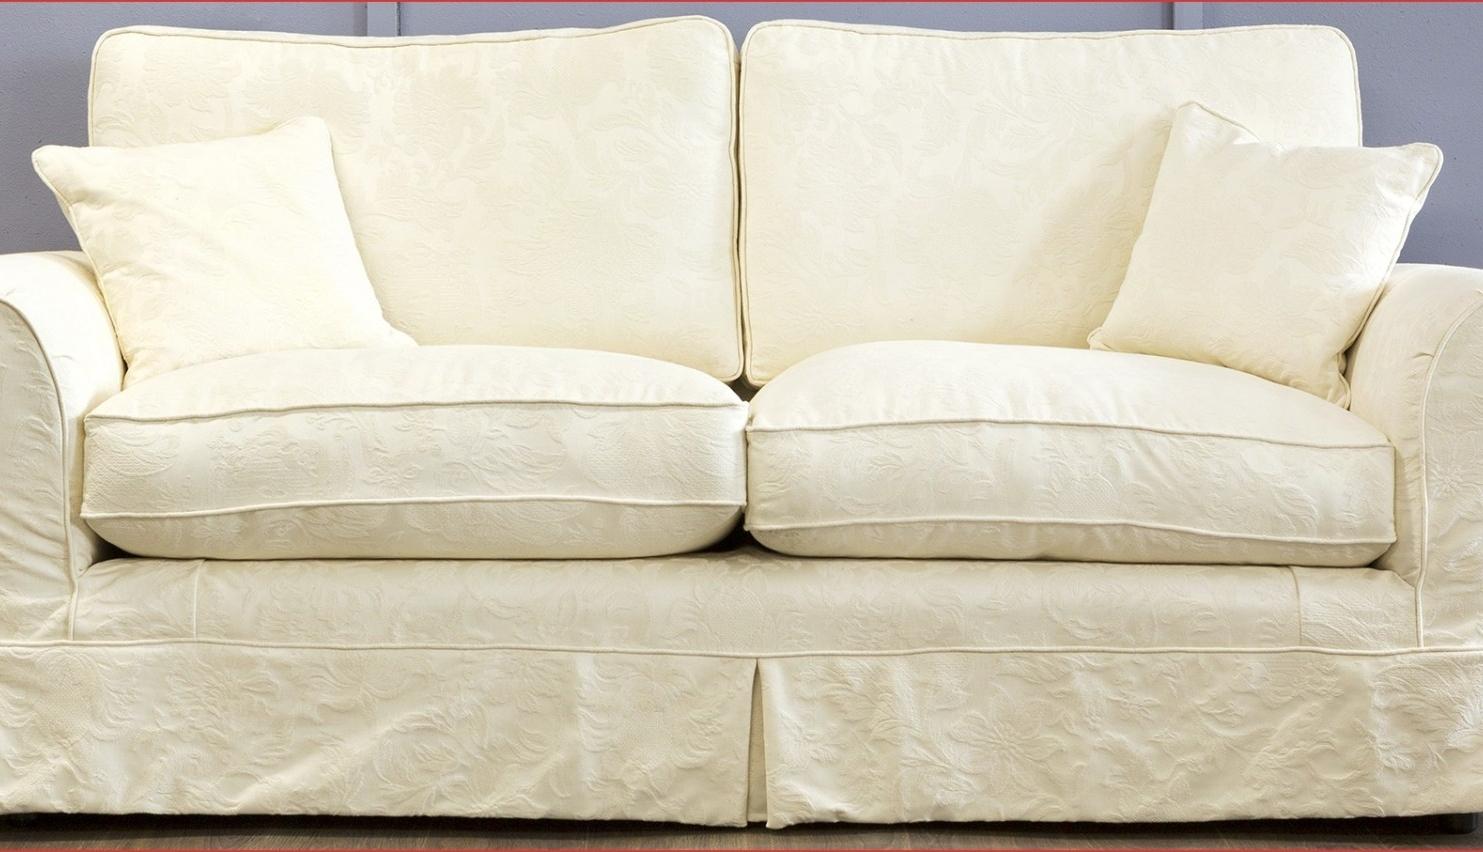 Sofas With Removable Machine Washable Covers Regarding Most Recently Released Sofas With Washable Covers (View 13 of 15)